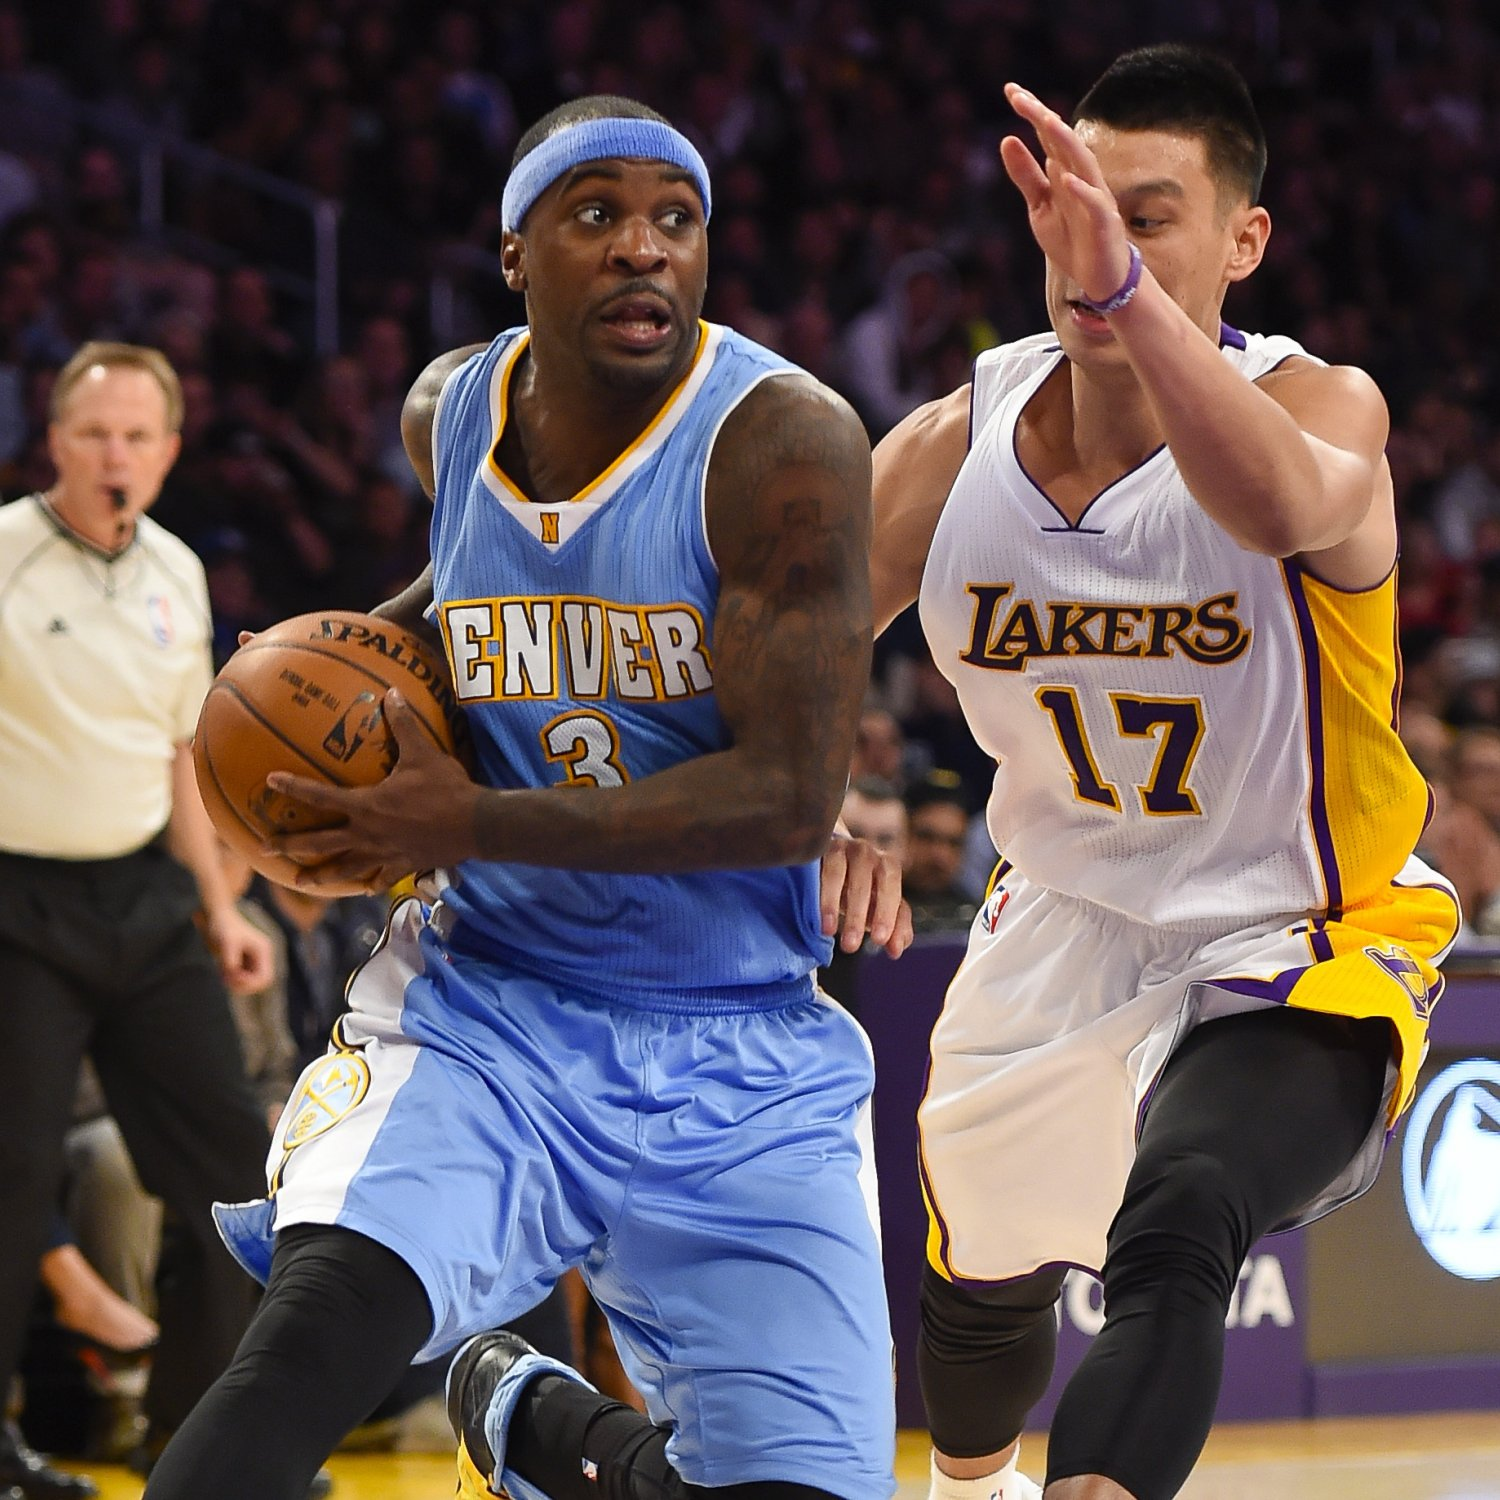 LA Lakers Vs. Denver Nuggets: Live Score, Highlights And